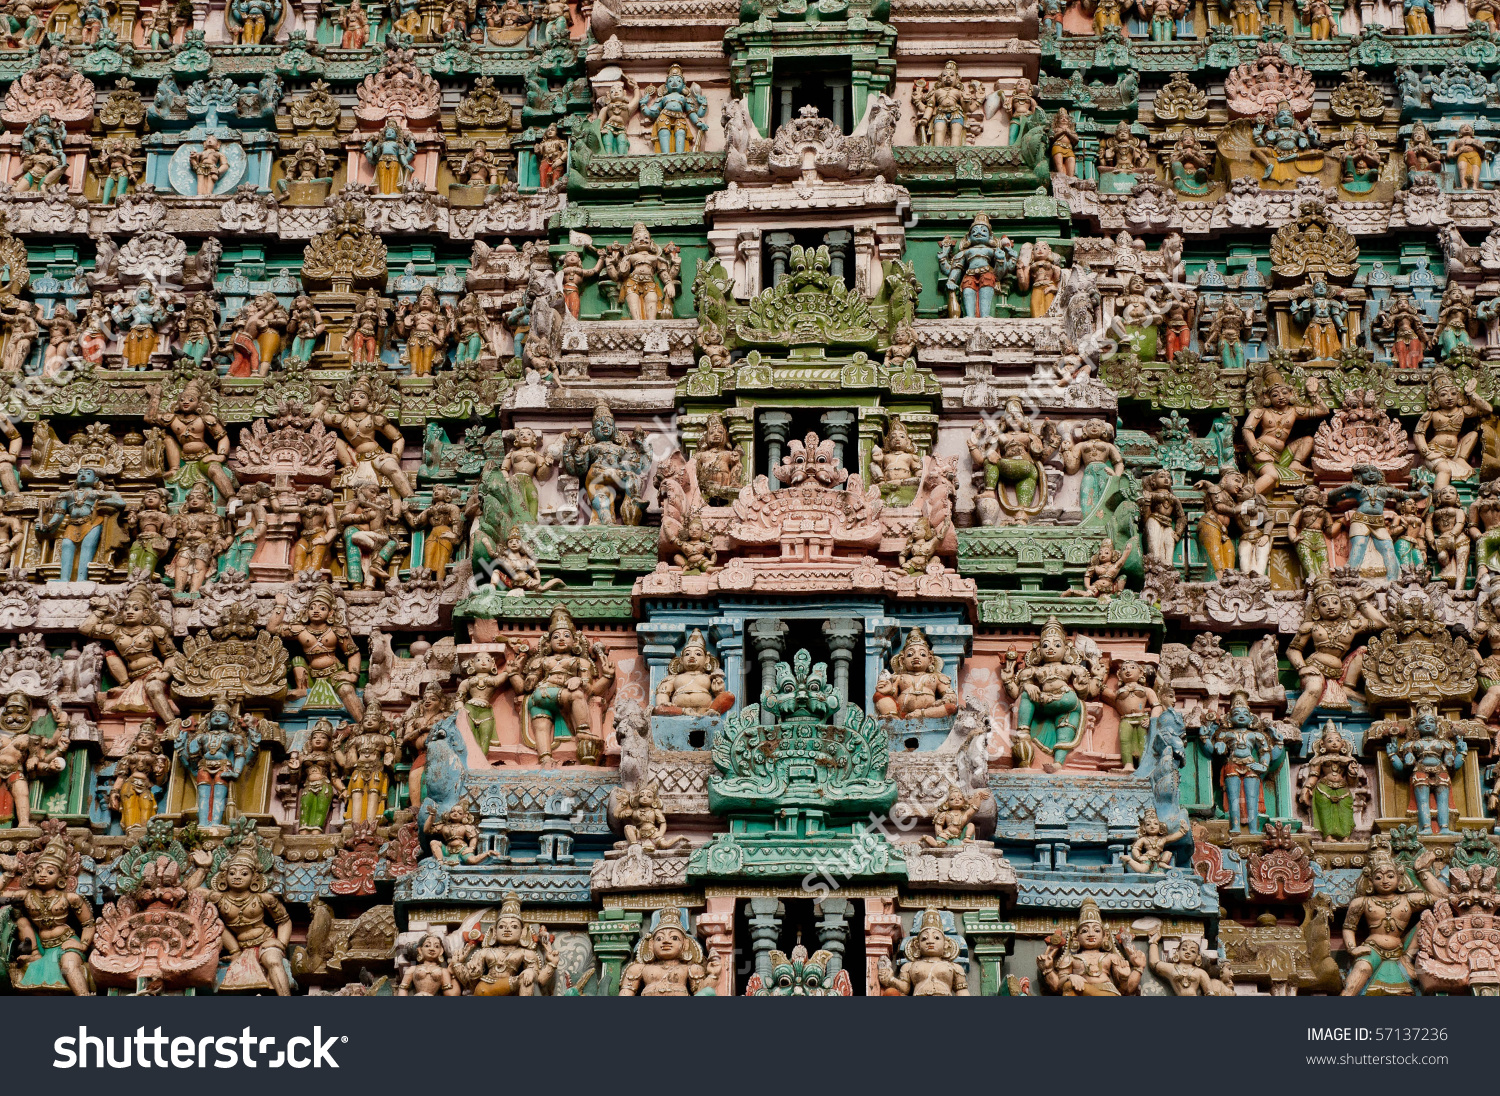 Close Up Details Of The Famous Chola Architecture Stock Photo.